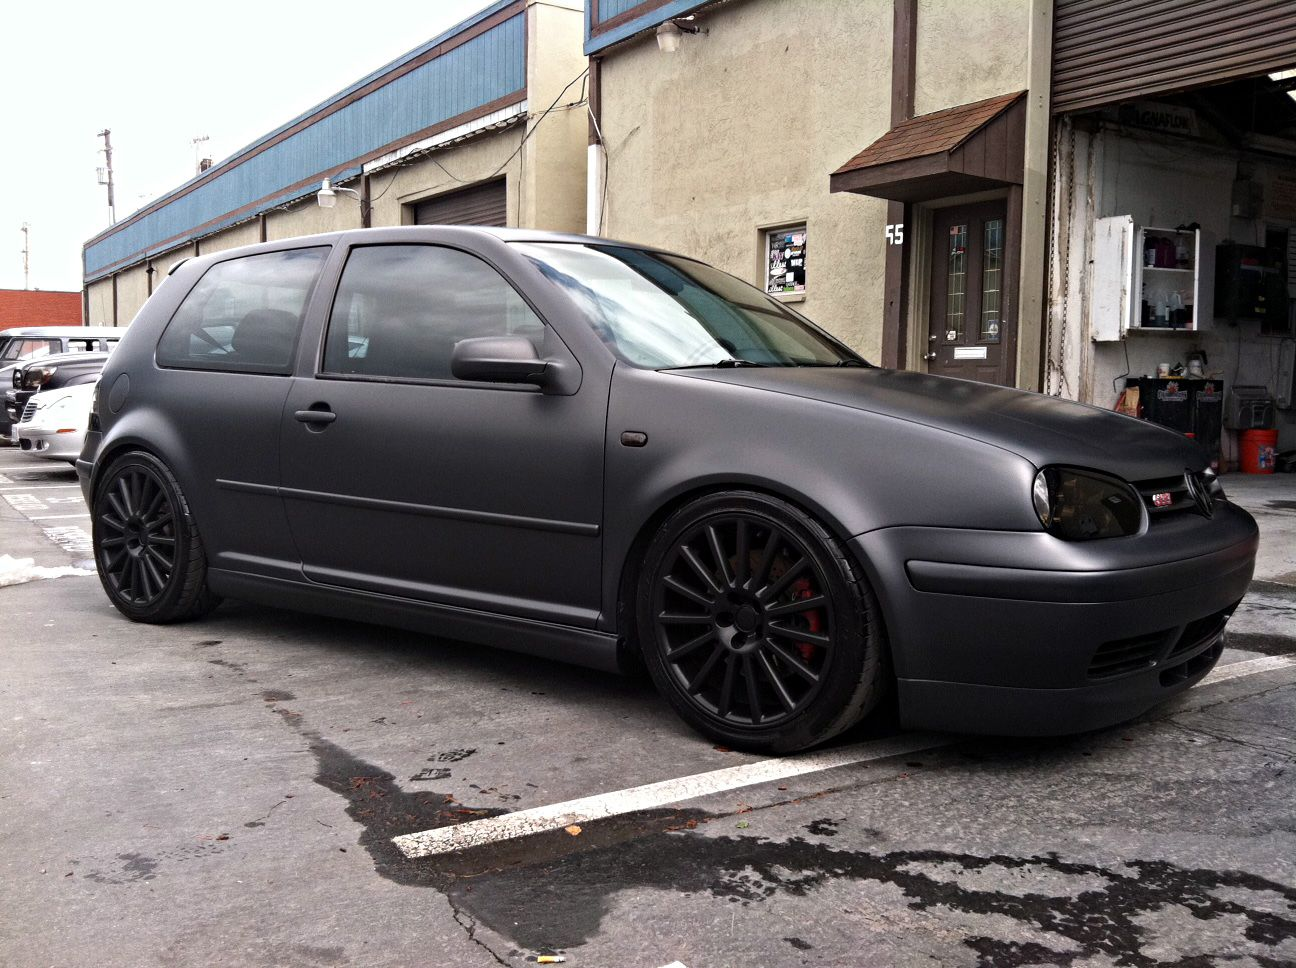 Gti That Just Got Out Of The Booth With A Matte Charcoal